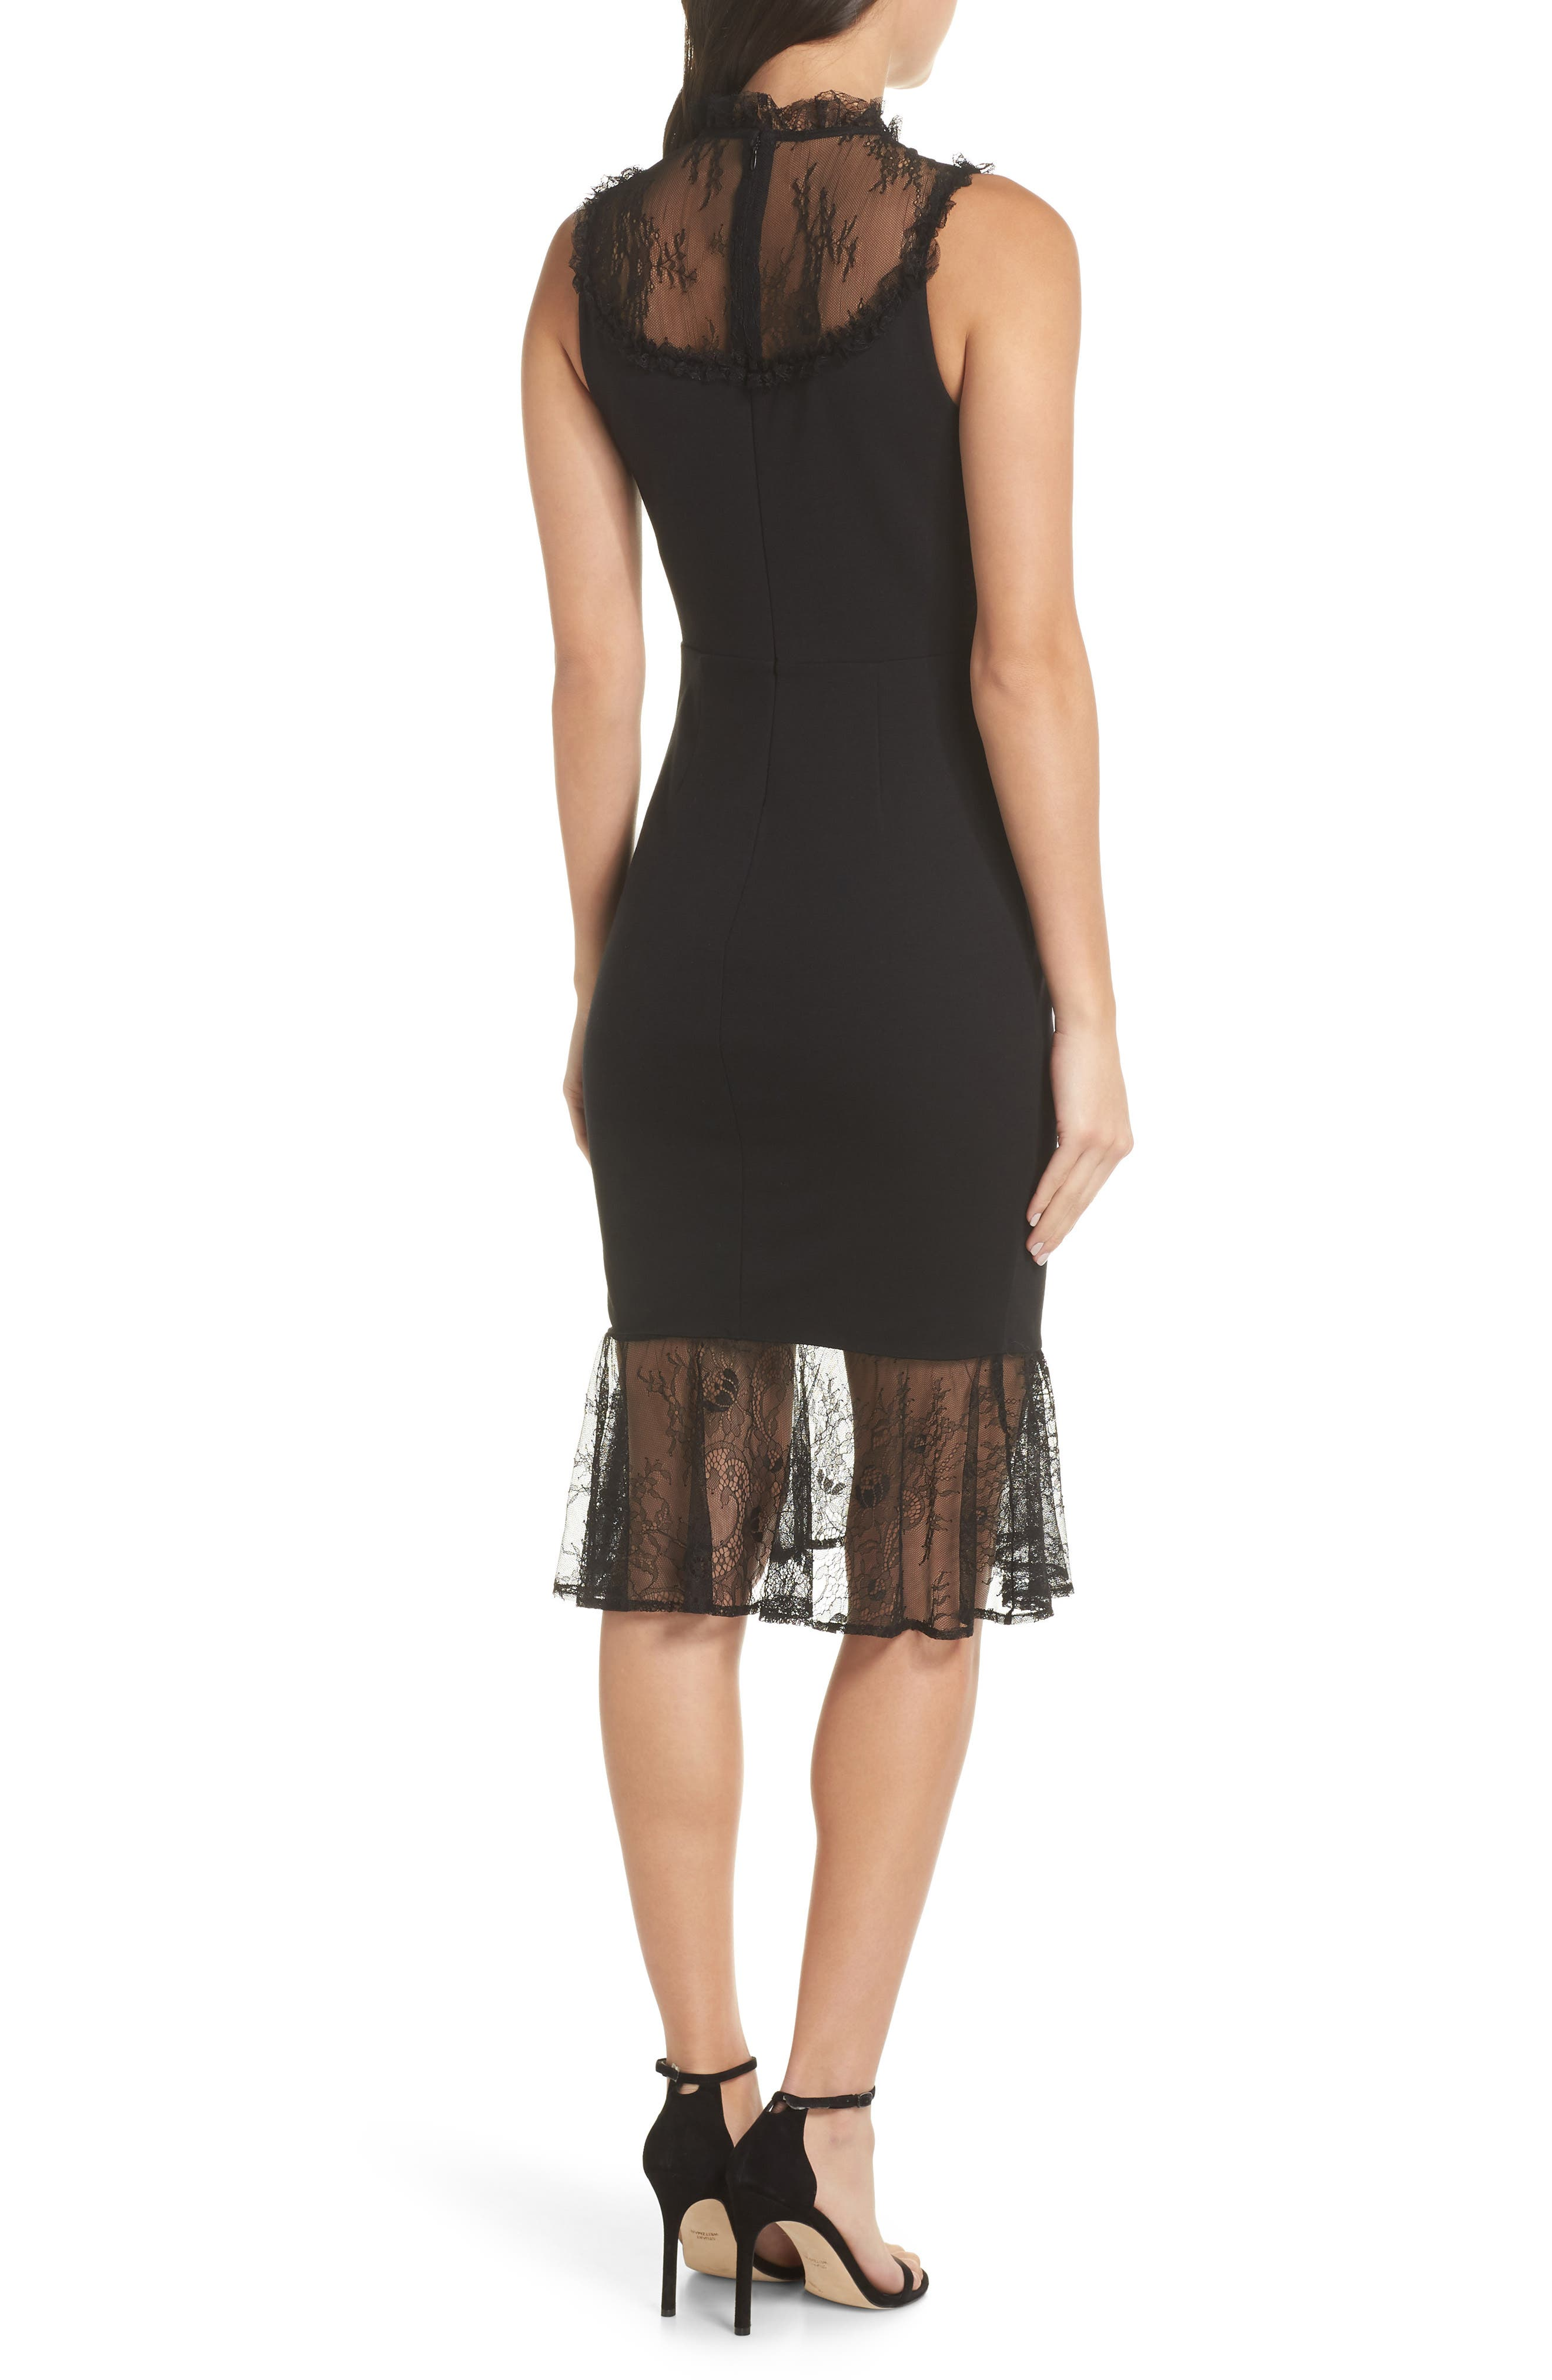 ALI & JAY, Two to Tango Lace Detail Dress, Alternate thumbnail 2, color, 001